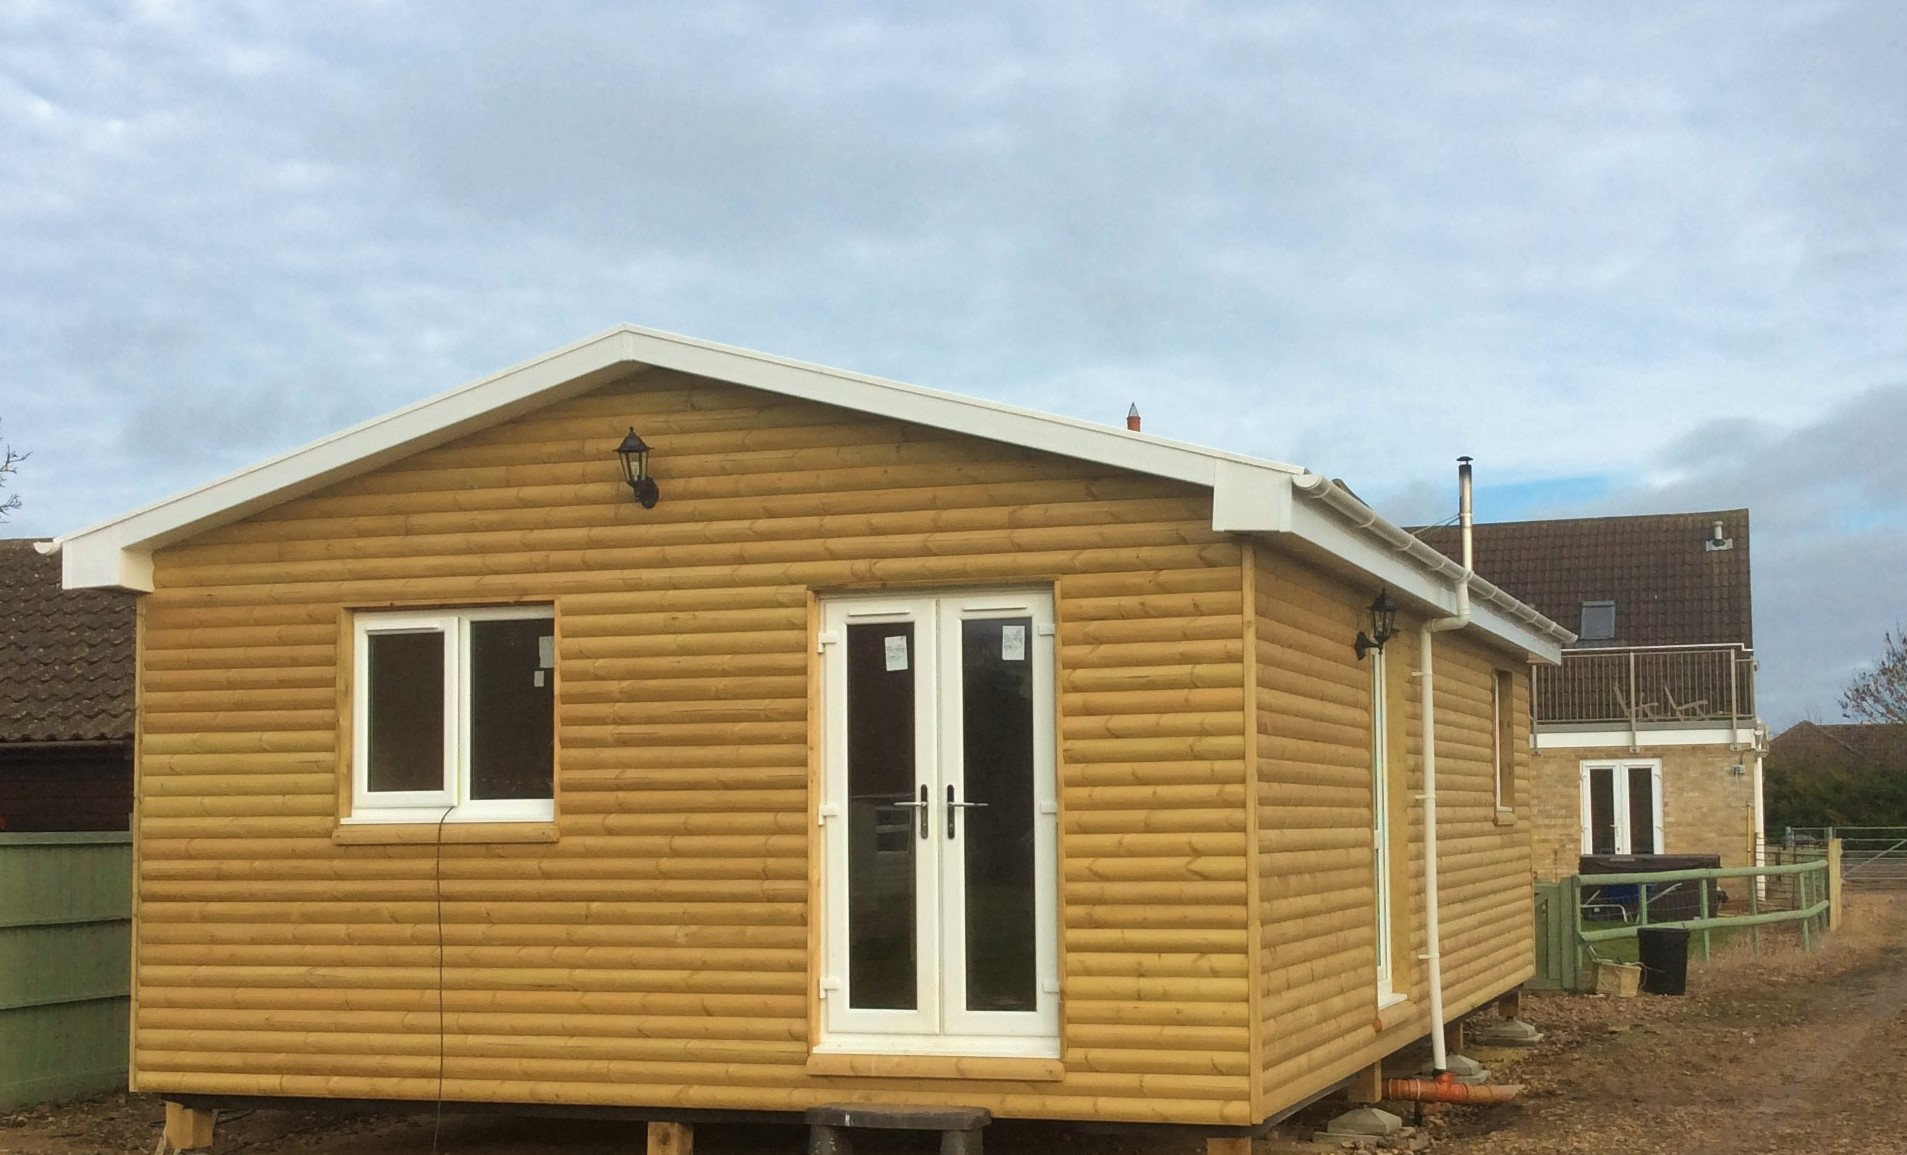 One of our Lodges with the fabulous rounded Log cladding in Cambridgeshire